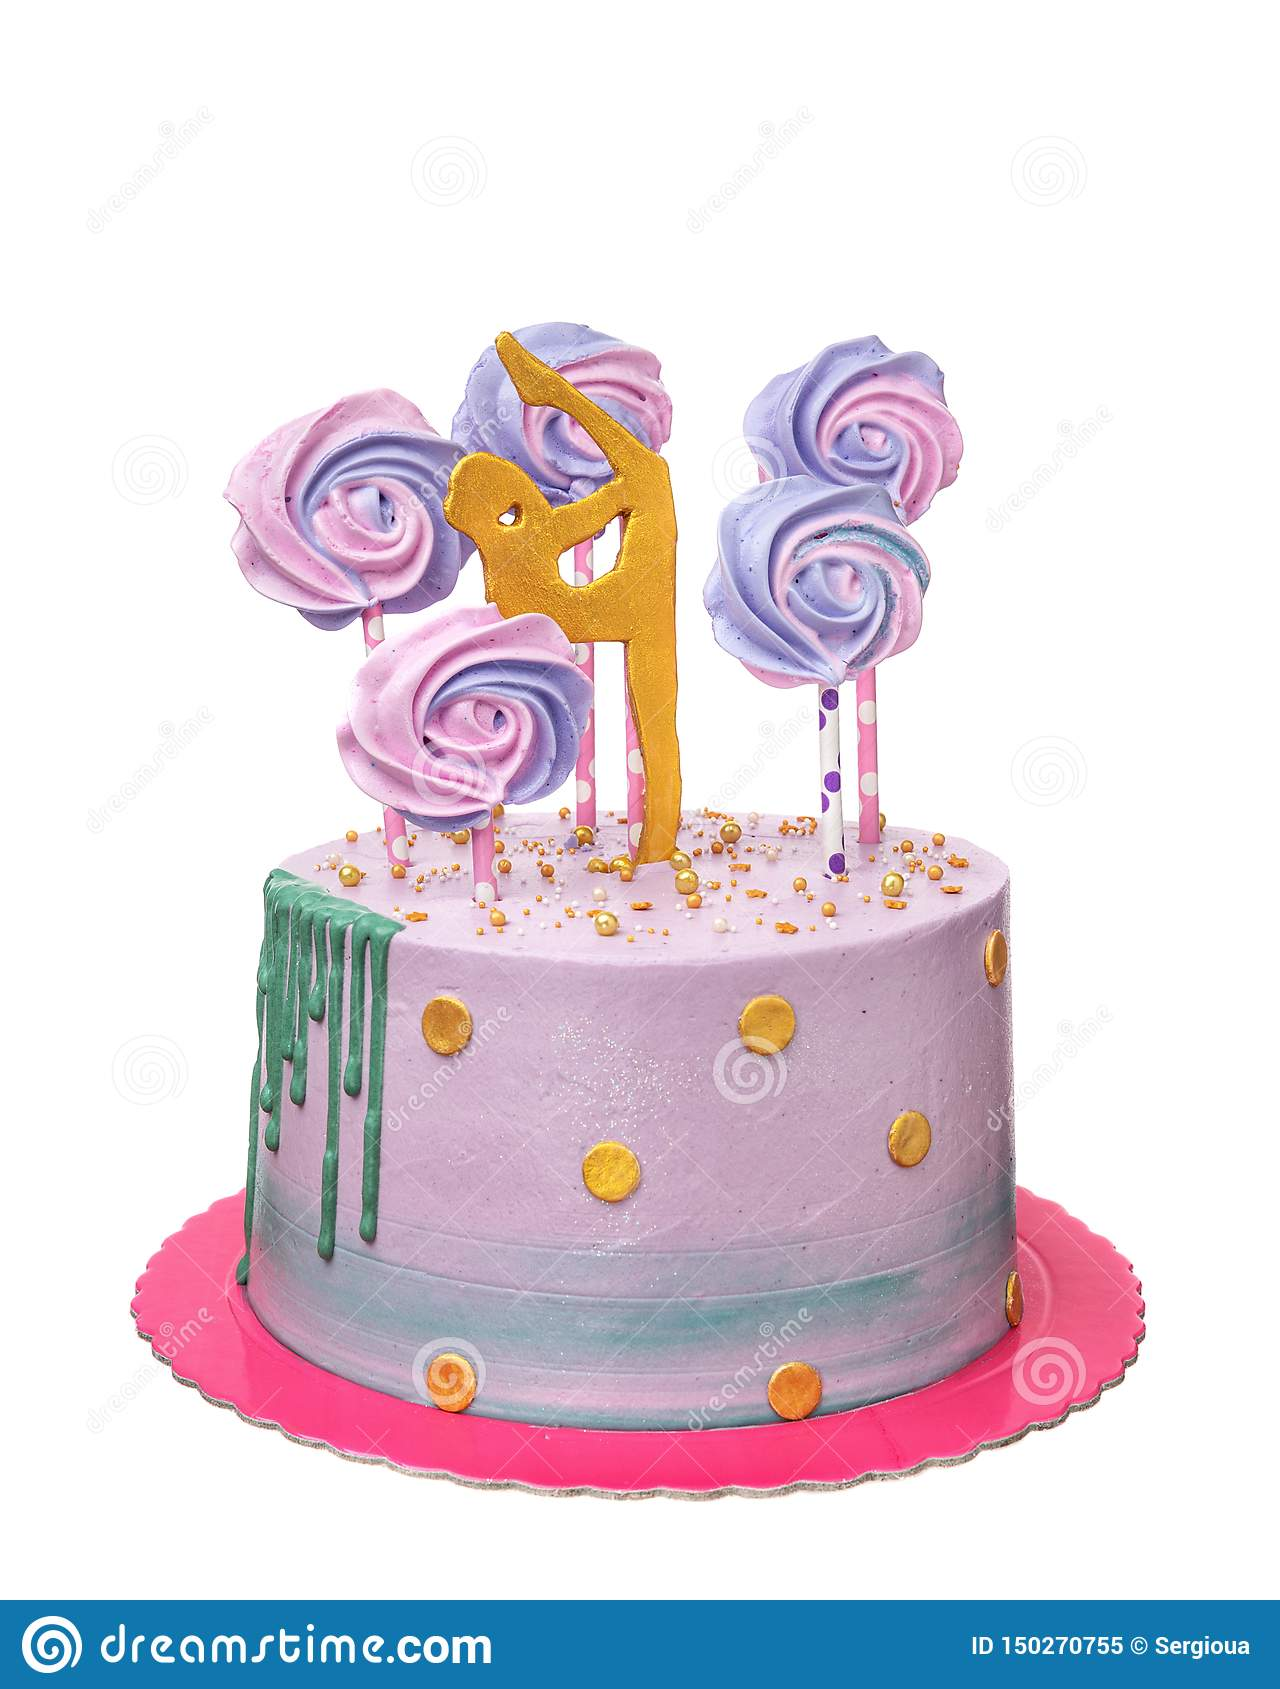 Strange A Birthday Cake For A Girl Gymnast Stock Image Image Of Birthday Cards Printable Trancafe Filternl